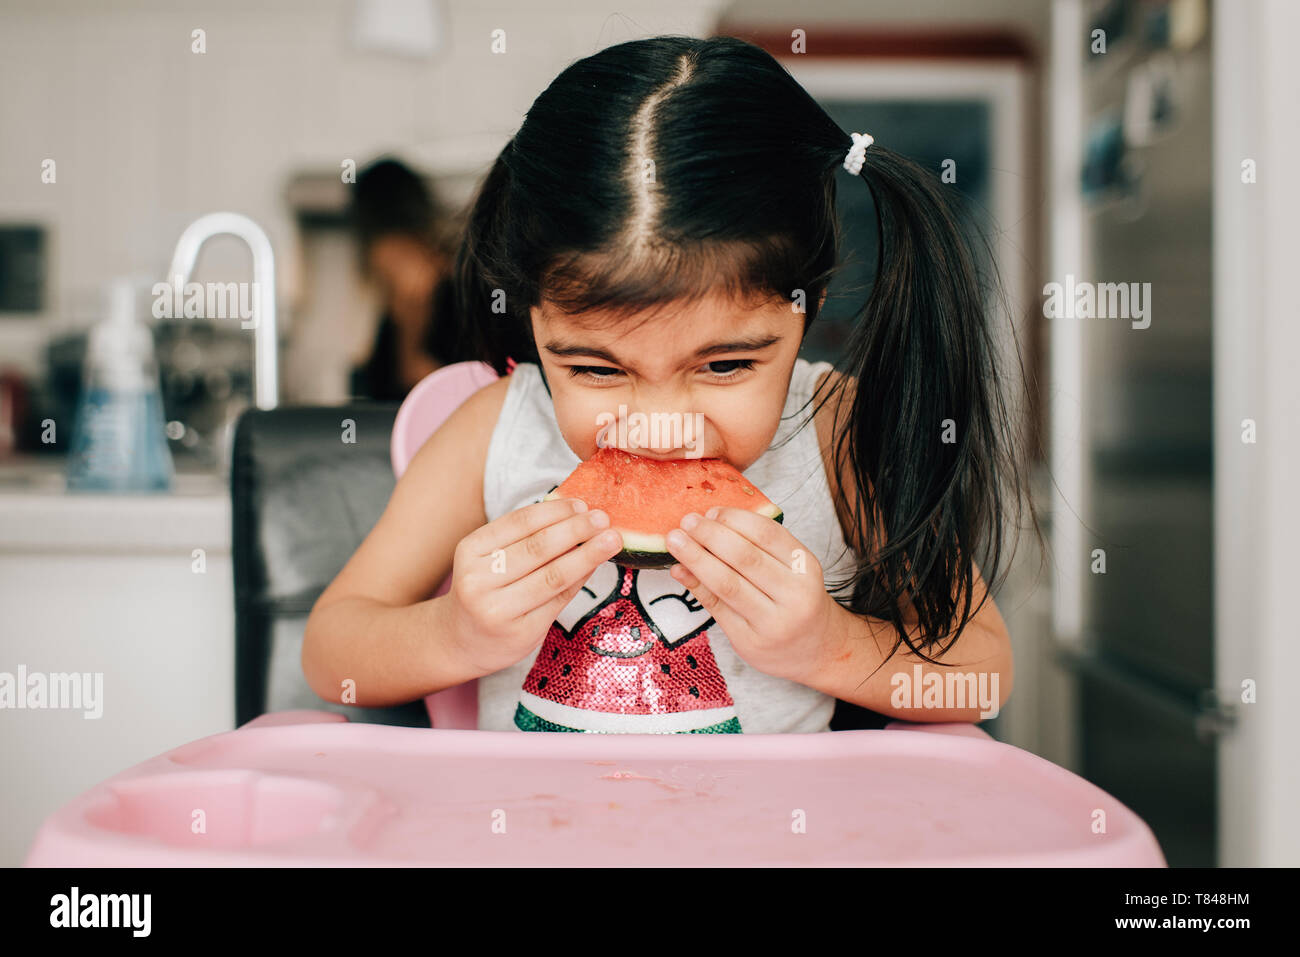 Girl in high chair eating water melon Stock Photo